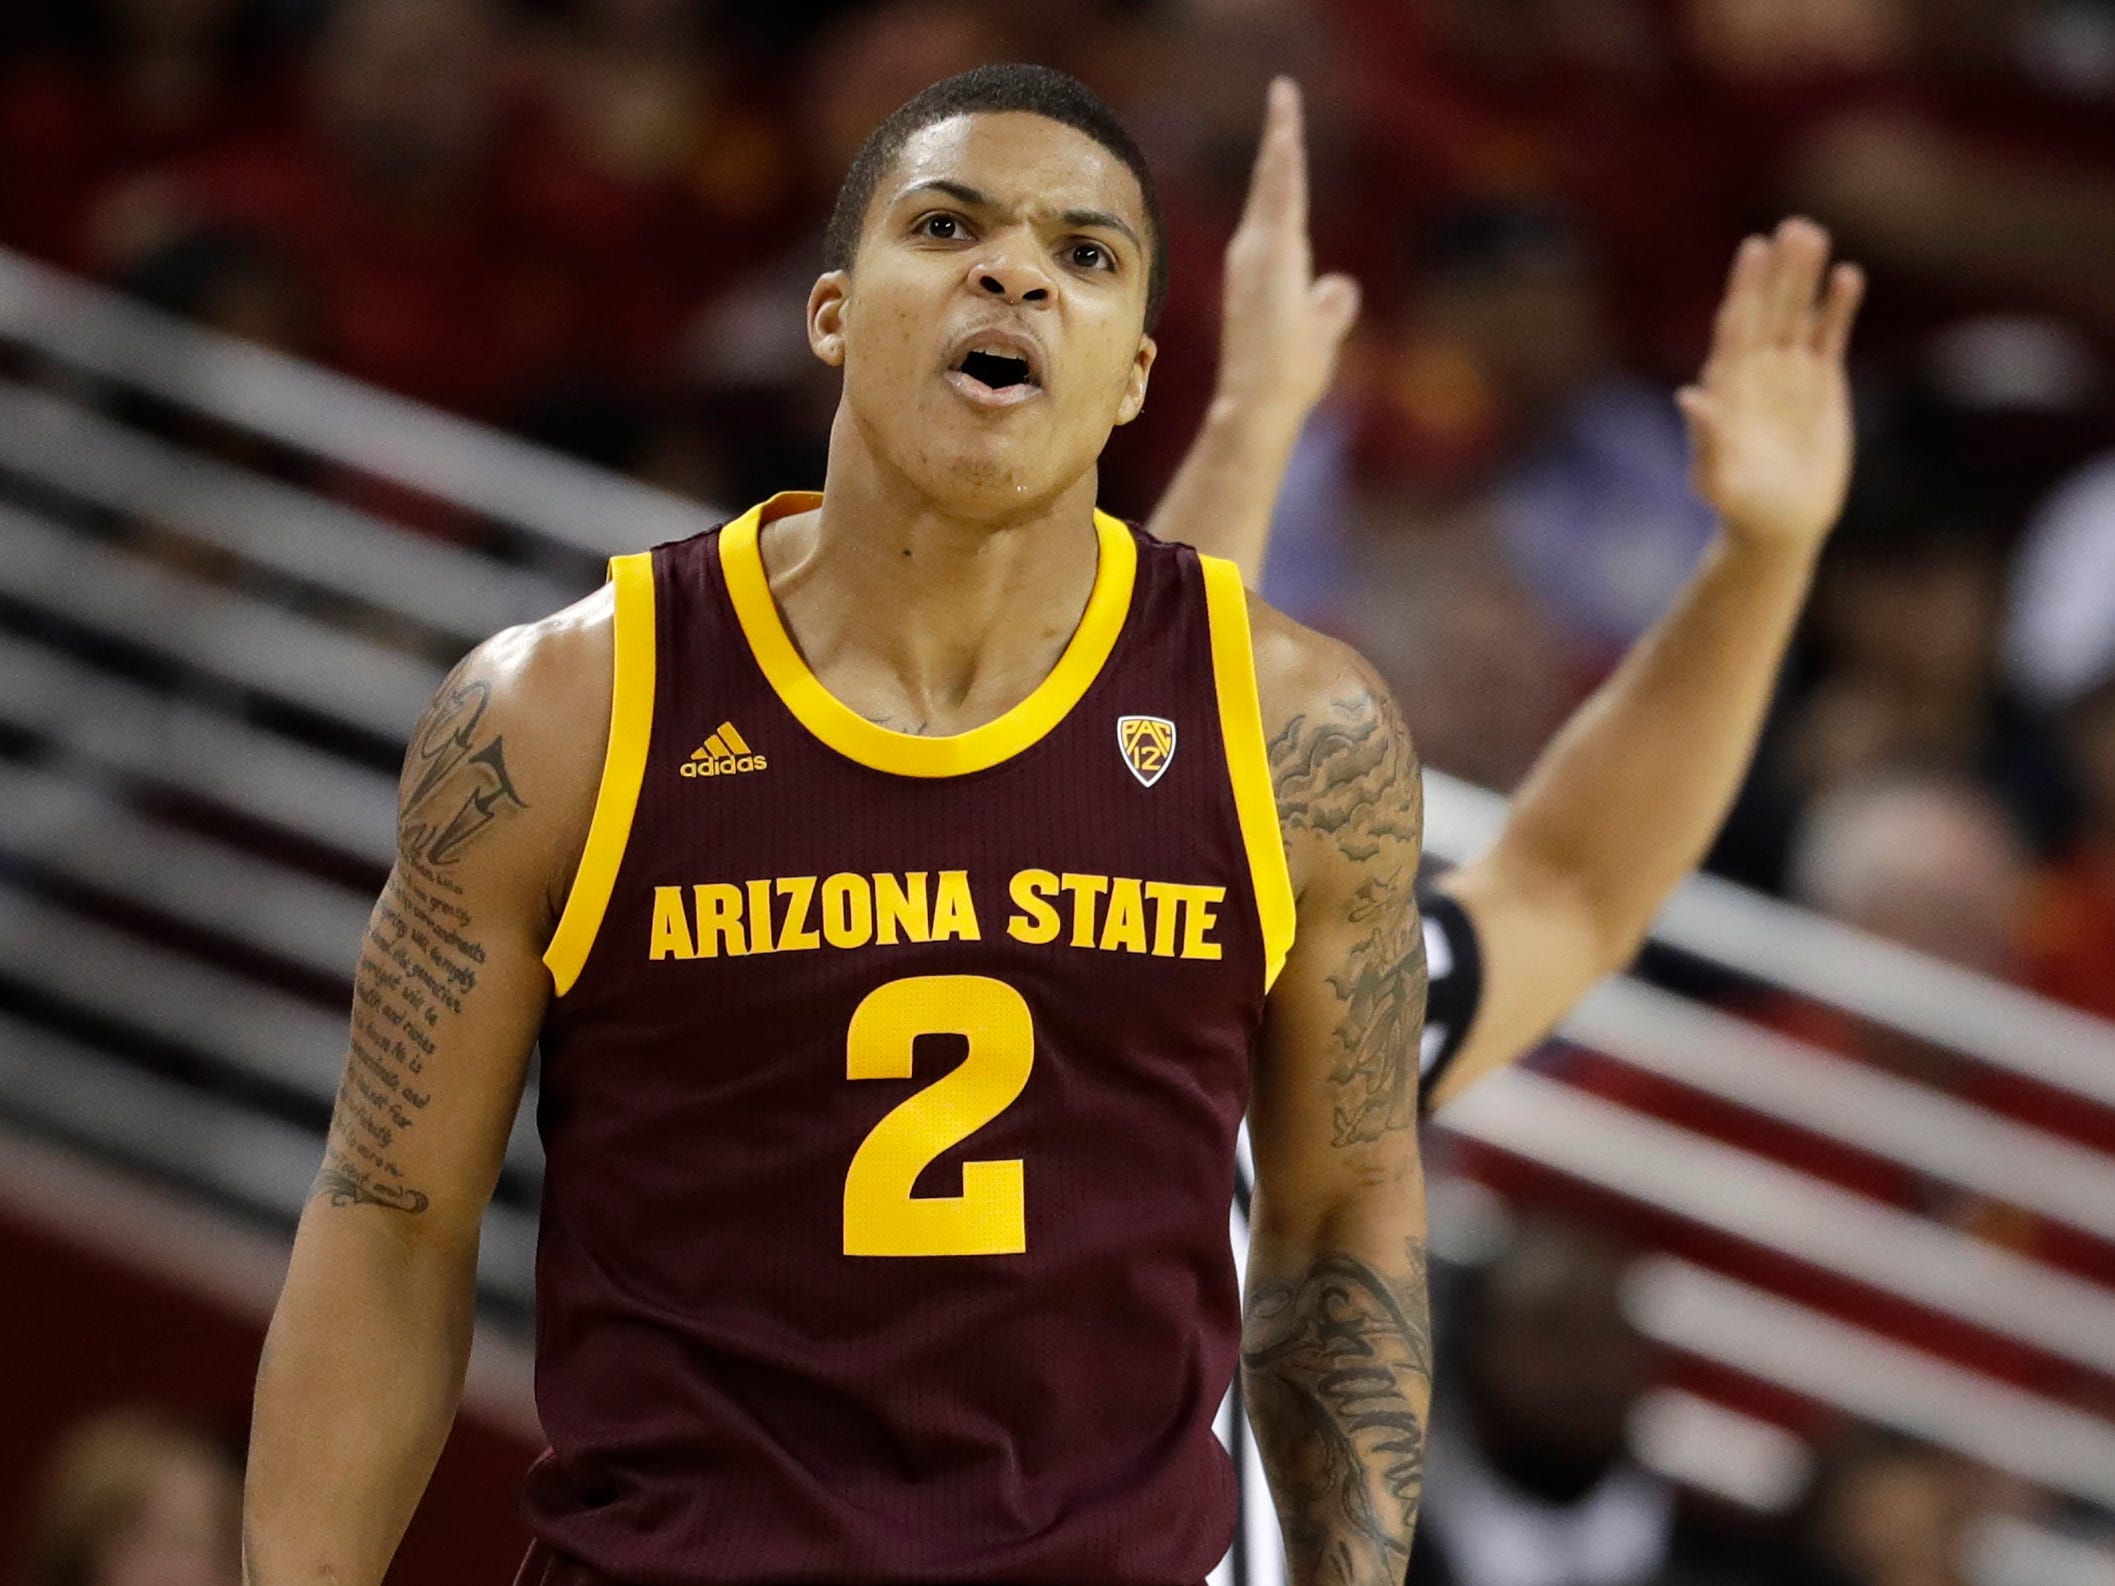 Arizona State guard Rob Edwards (2) reacts after making a three-point basket against Southern California during the first half of an NCAA college basketball game Saturday, Jan. 26, 2019, in Los Angeles.